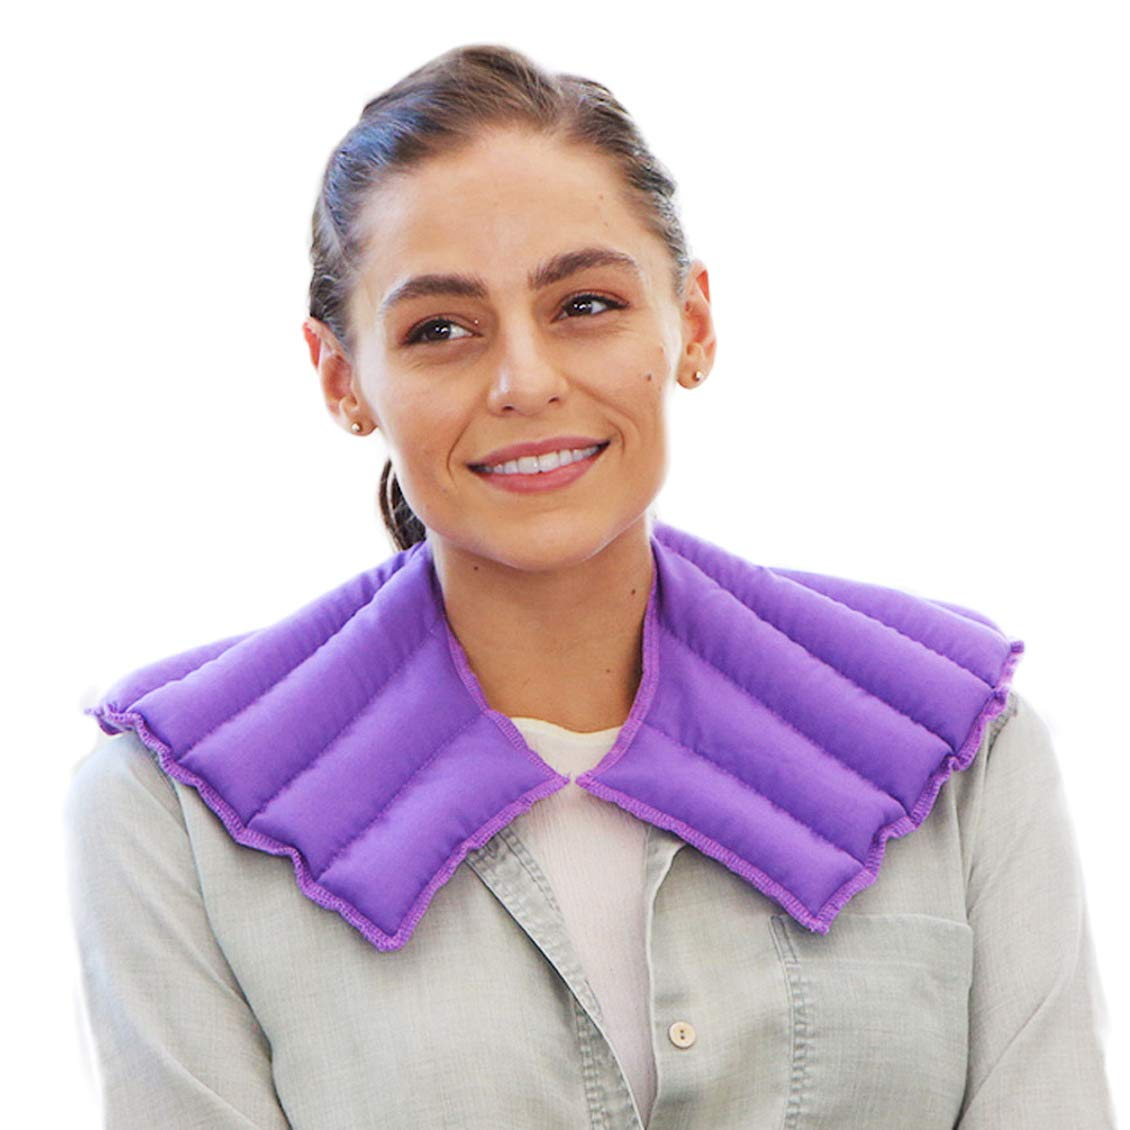 My Heating Pad – Neck and Shoulder Wrap for Stress, Tension, Migraine Relief - Microwavable and Reusable – Hot Therapy Pack (Purple)